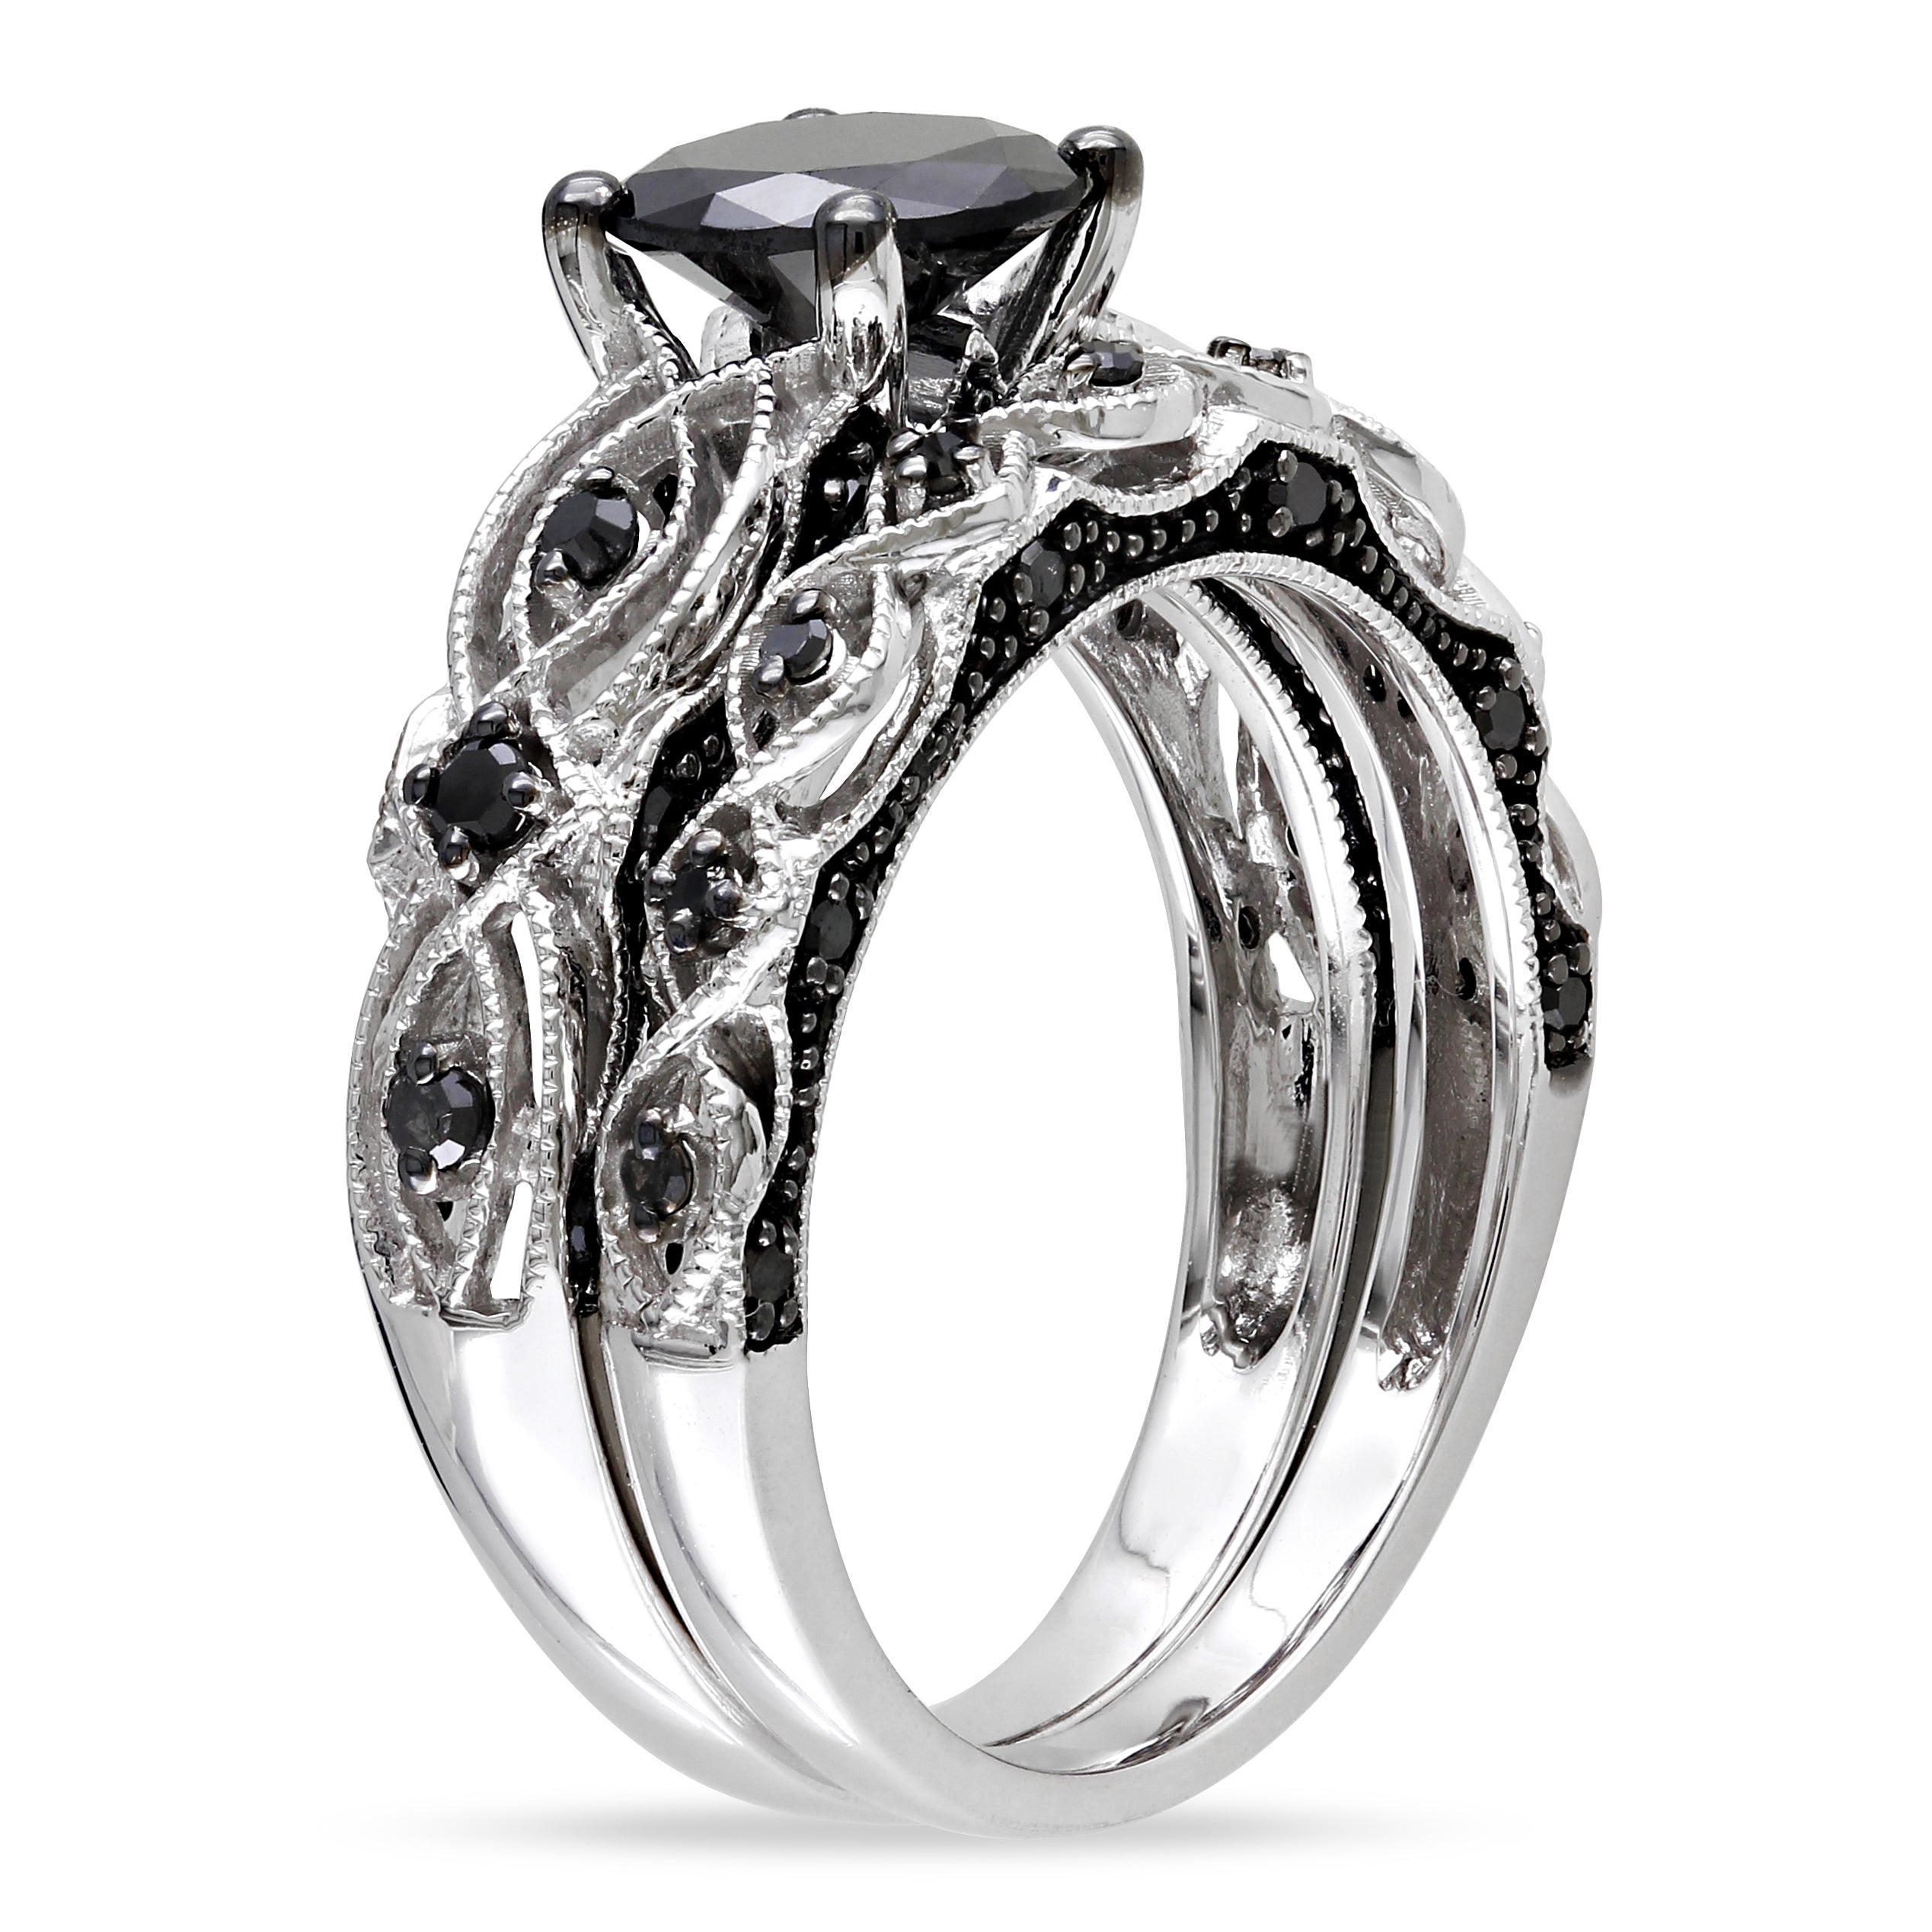 rings vault collections eternity bp barbara parker category product s archives diamond bands black band